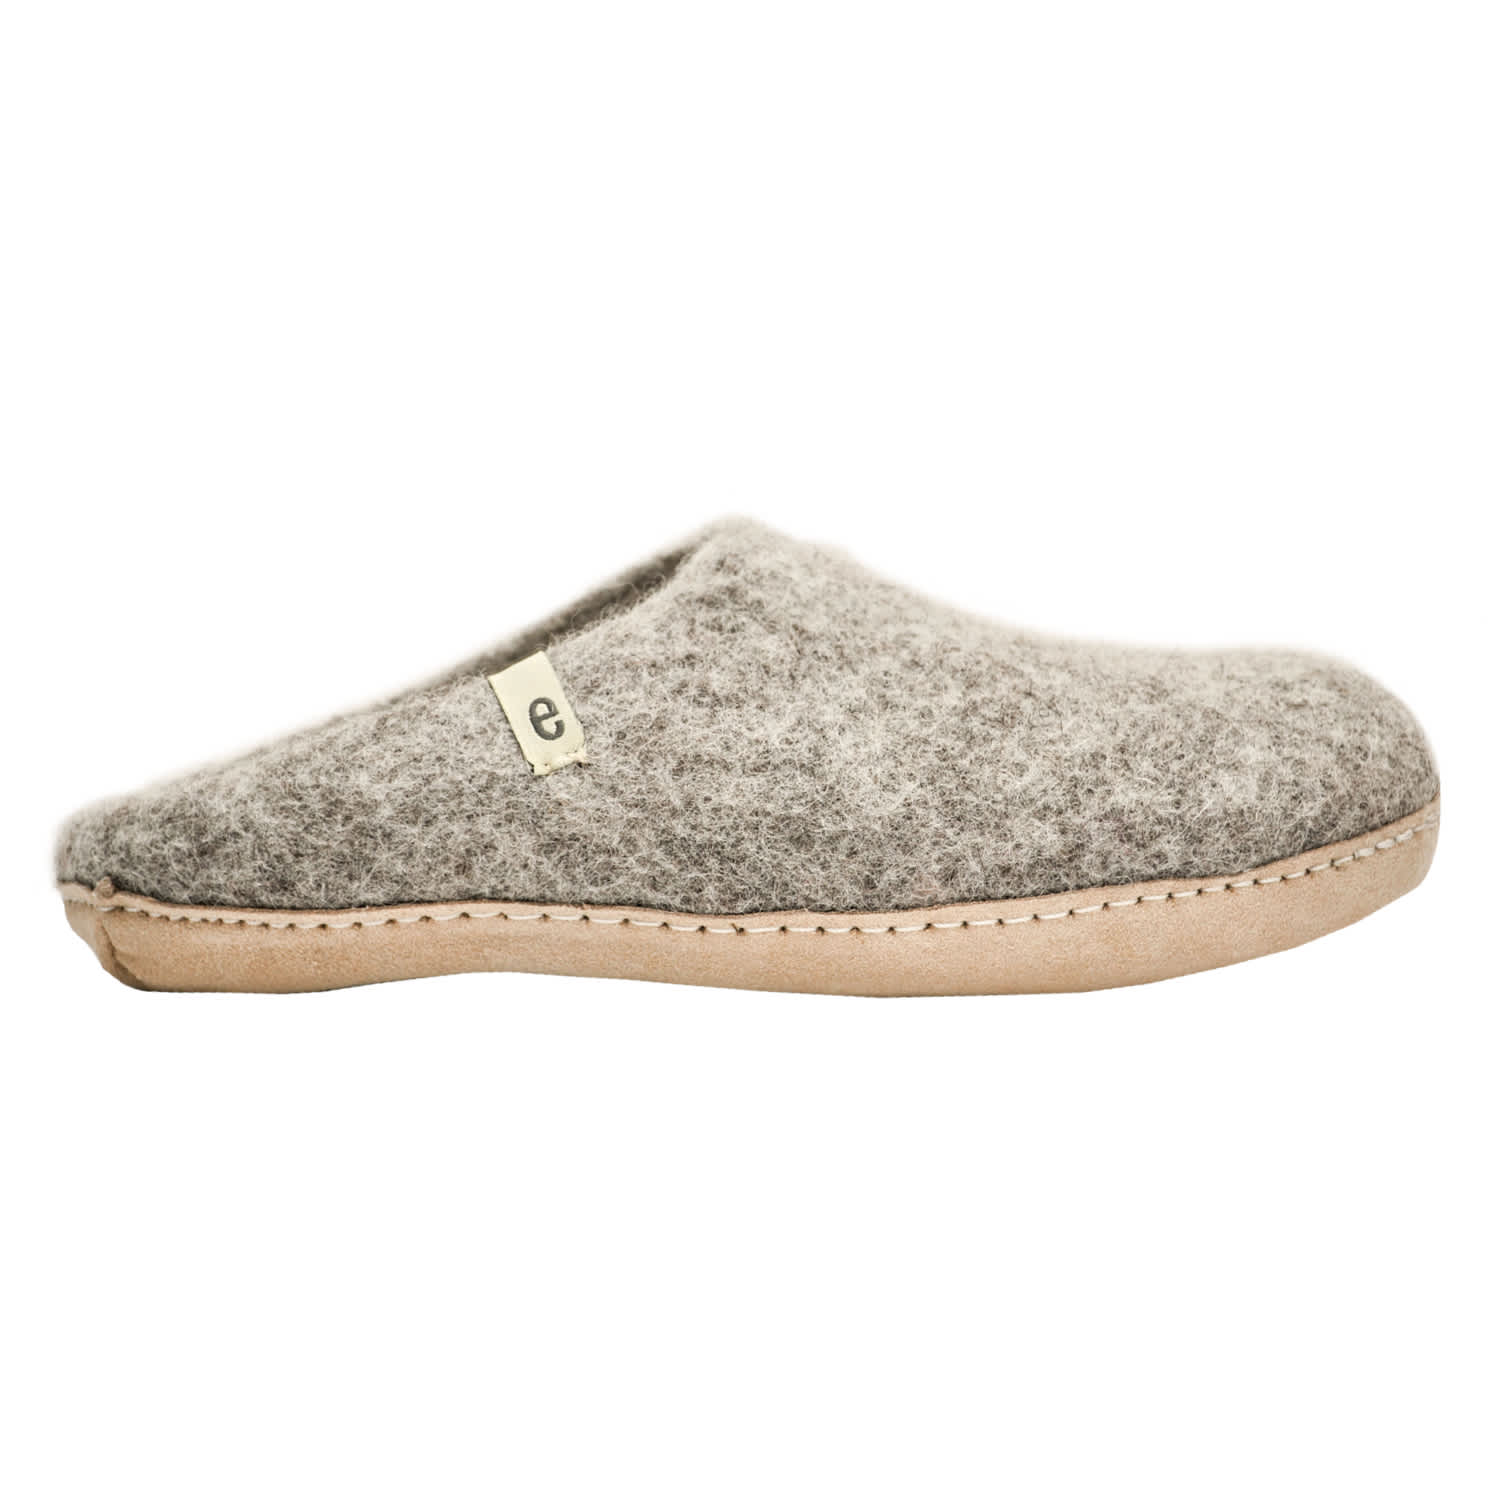 Egos Copenhagen Dove Grey Handmade 100% Wool Felted Slippers